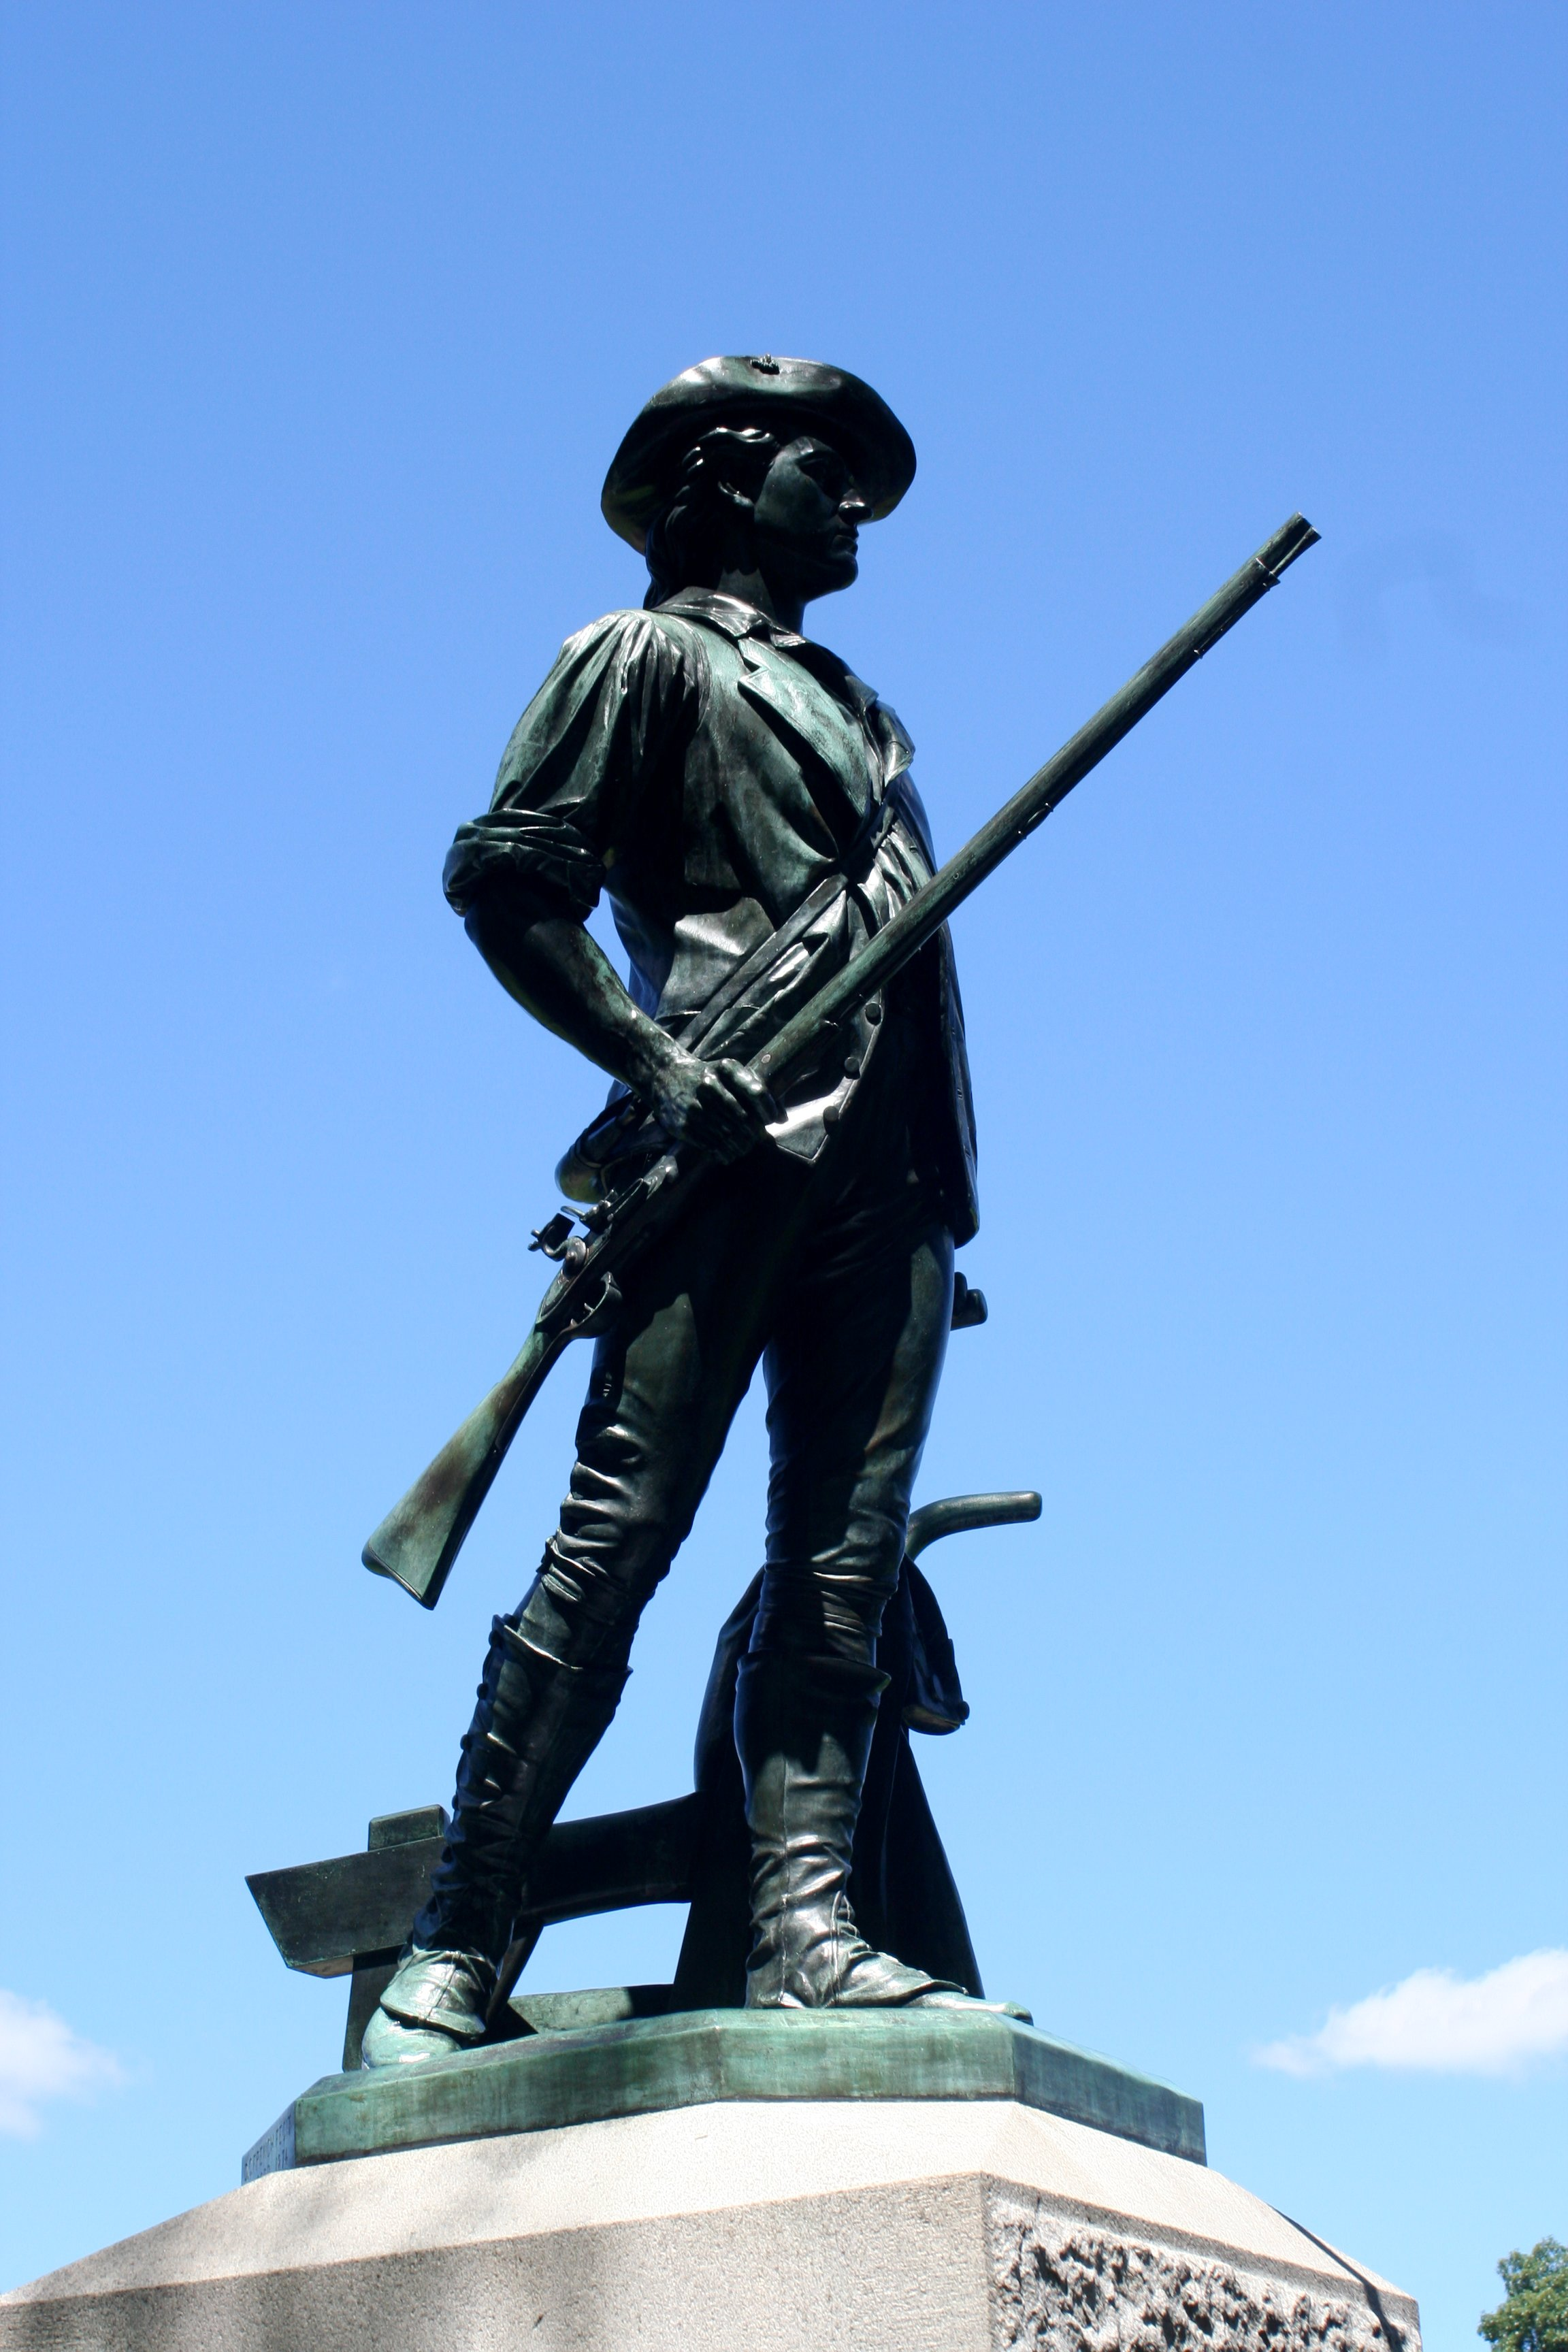 https://upload.wikimedia.org/wikipedia/commons/f/f6/Minuteman_statue_2_-_Old_North_Bridge.jpg